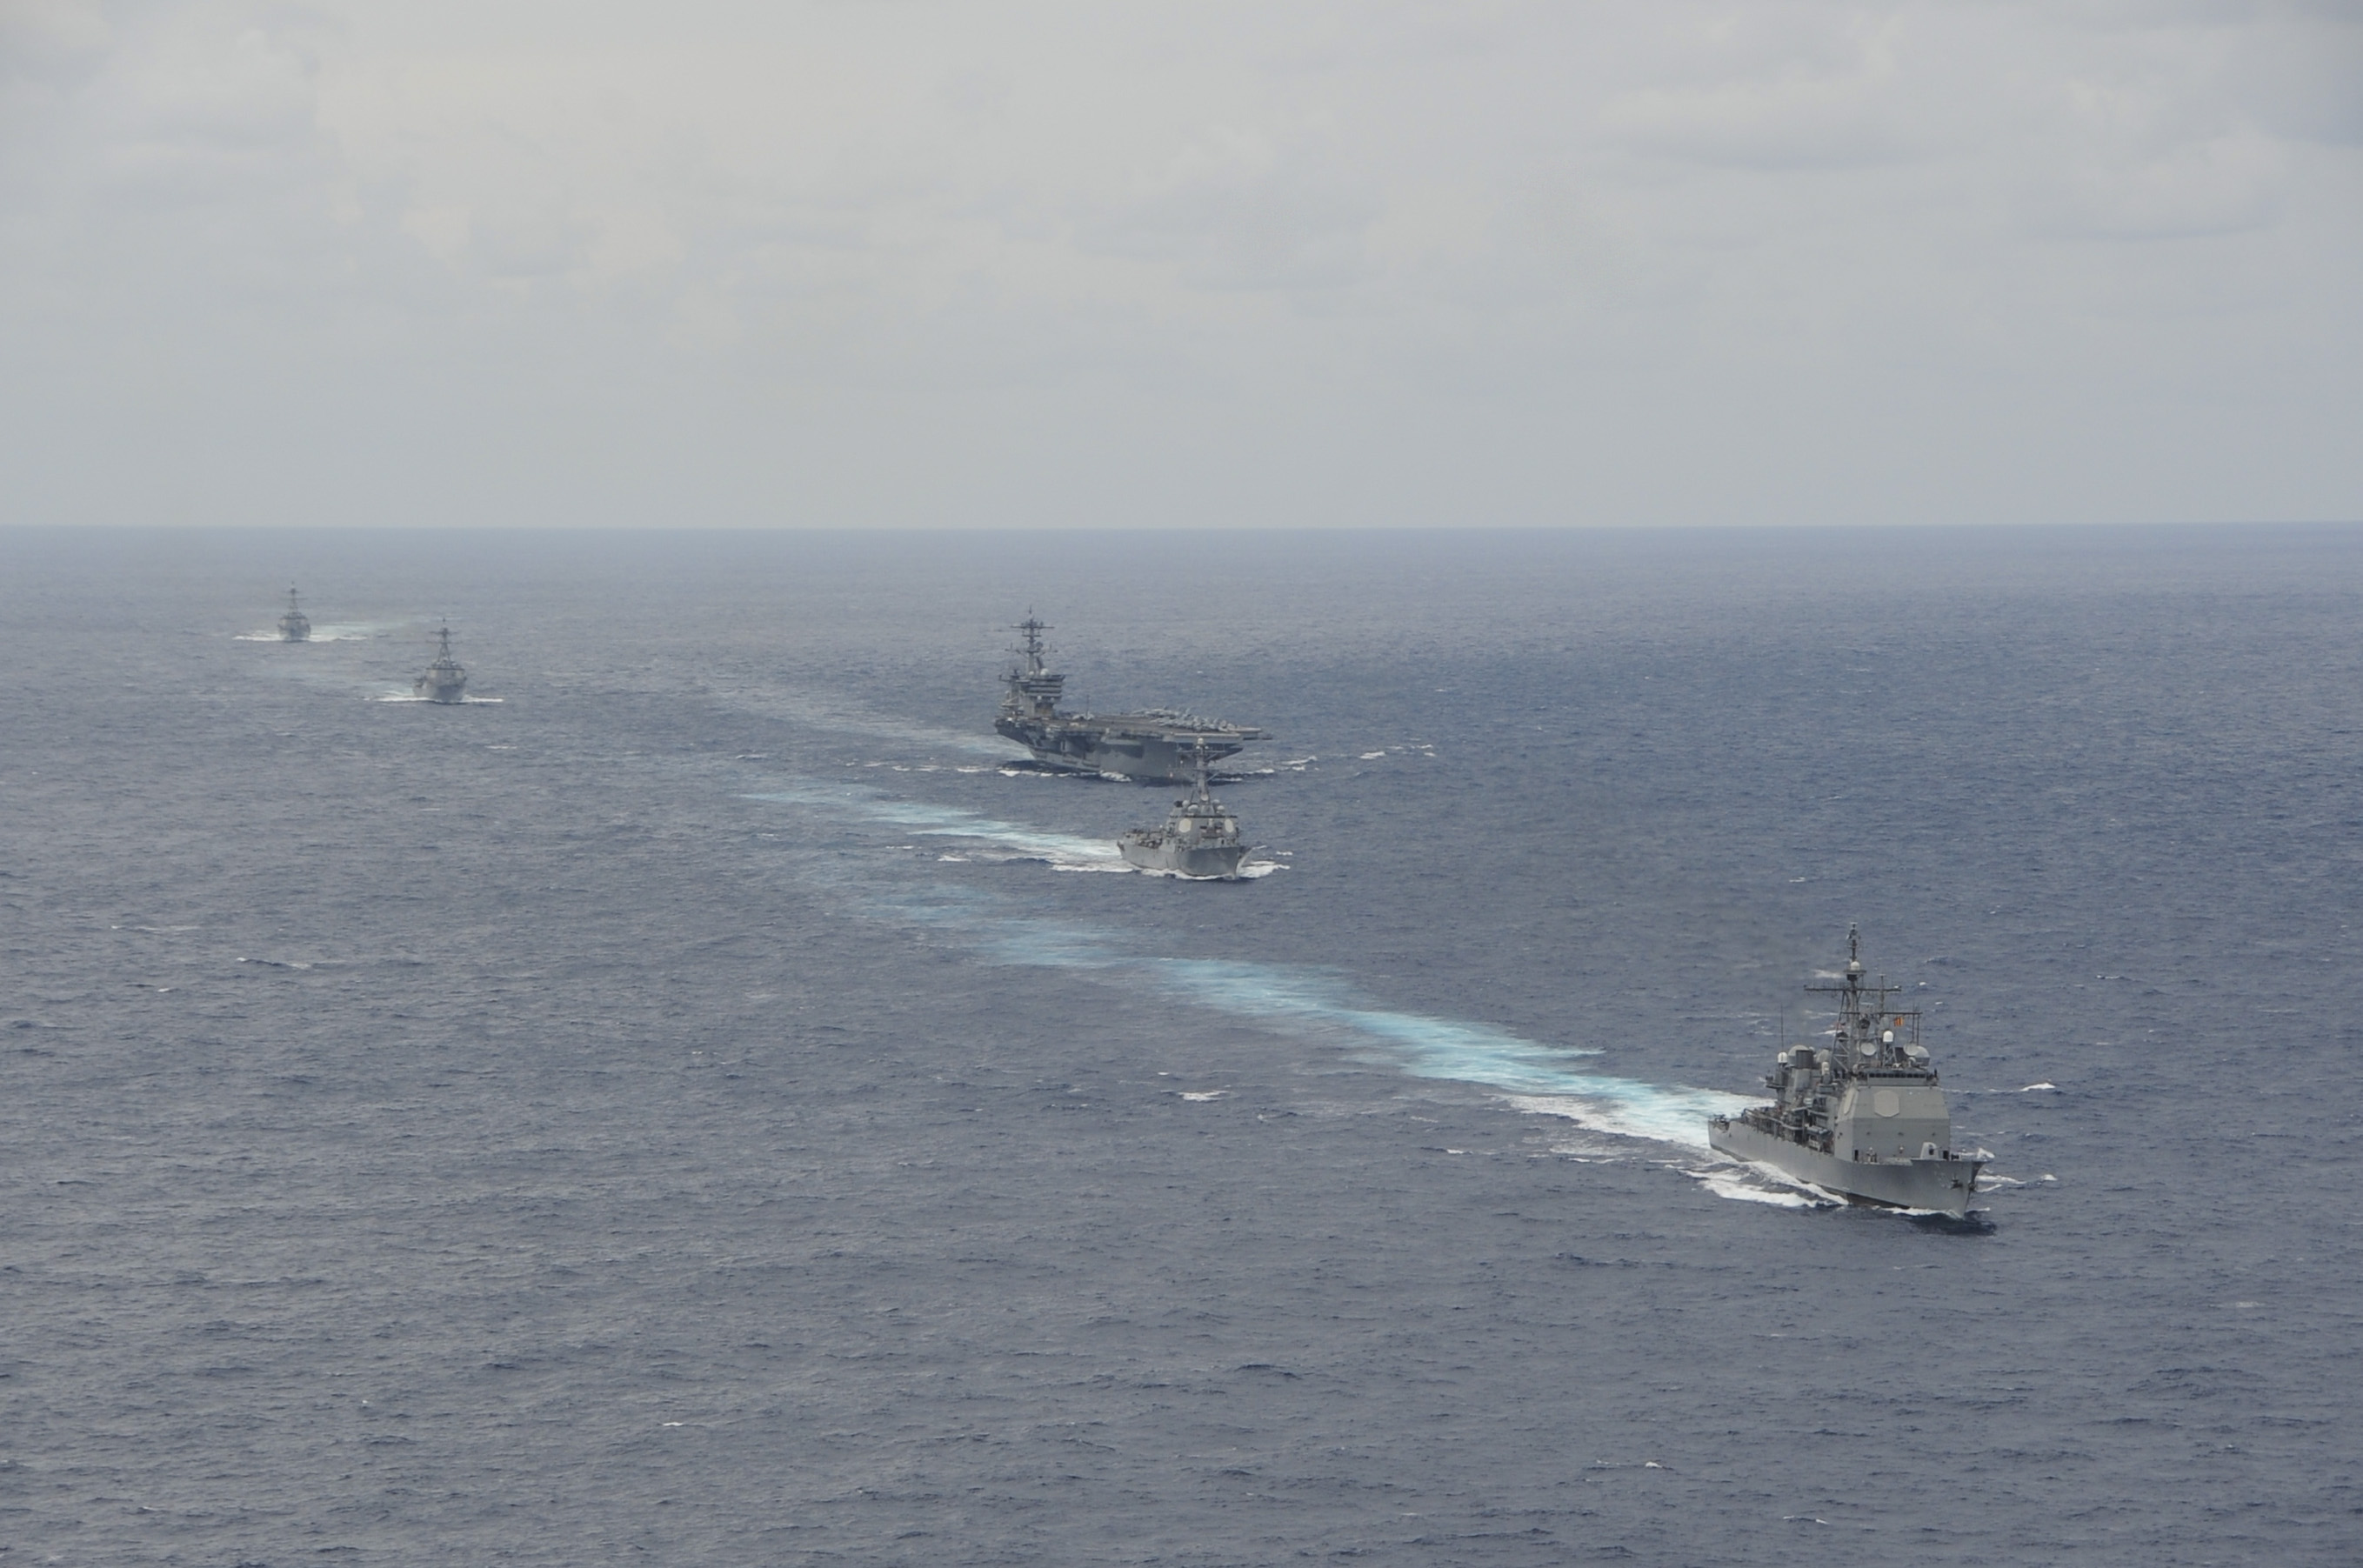 USS THEODORE ROOSEVELT CVN-71 Carrier Strike Group am 20.09.2014 im Atlantik Bild: U.S. Navy